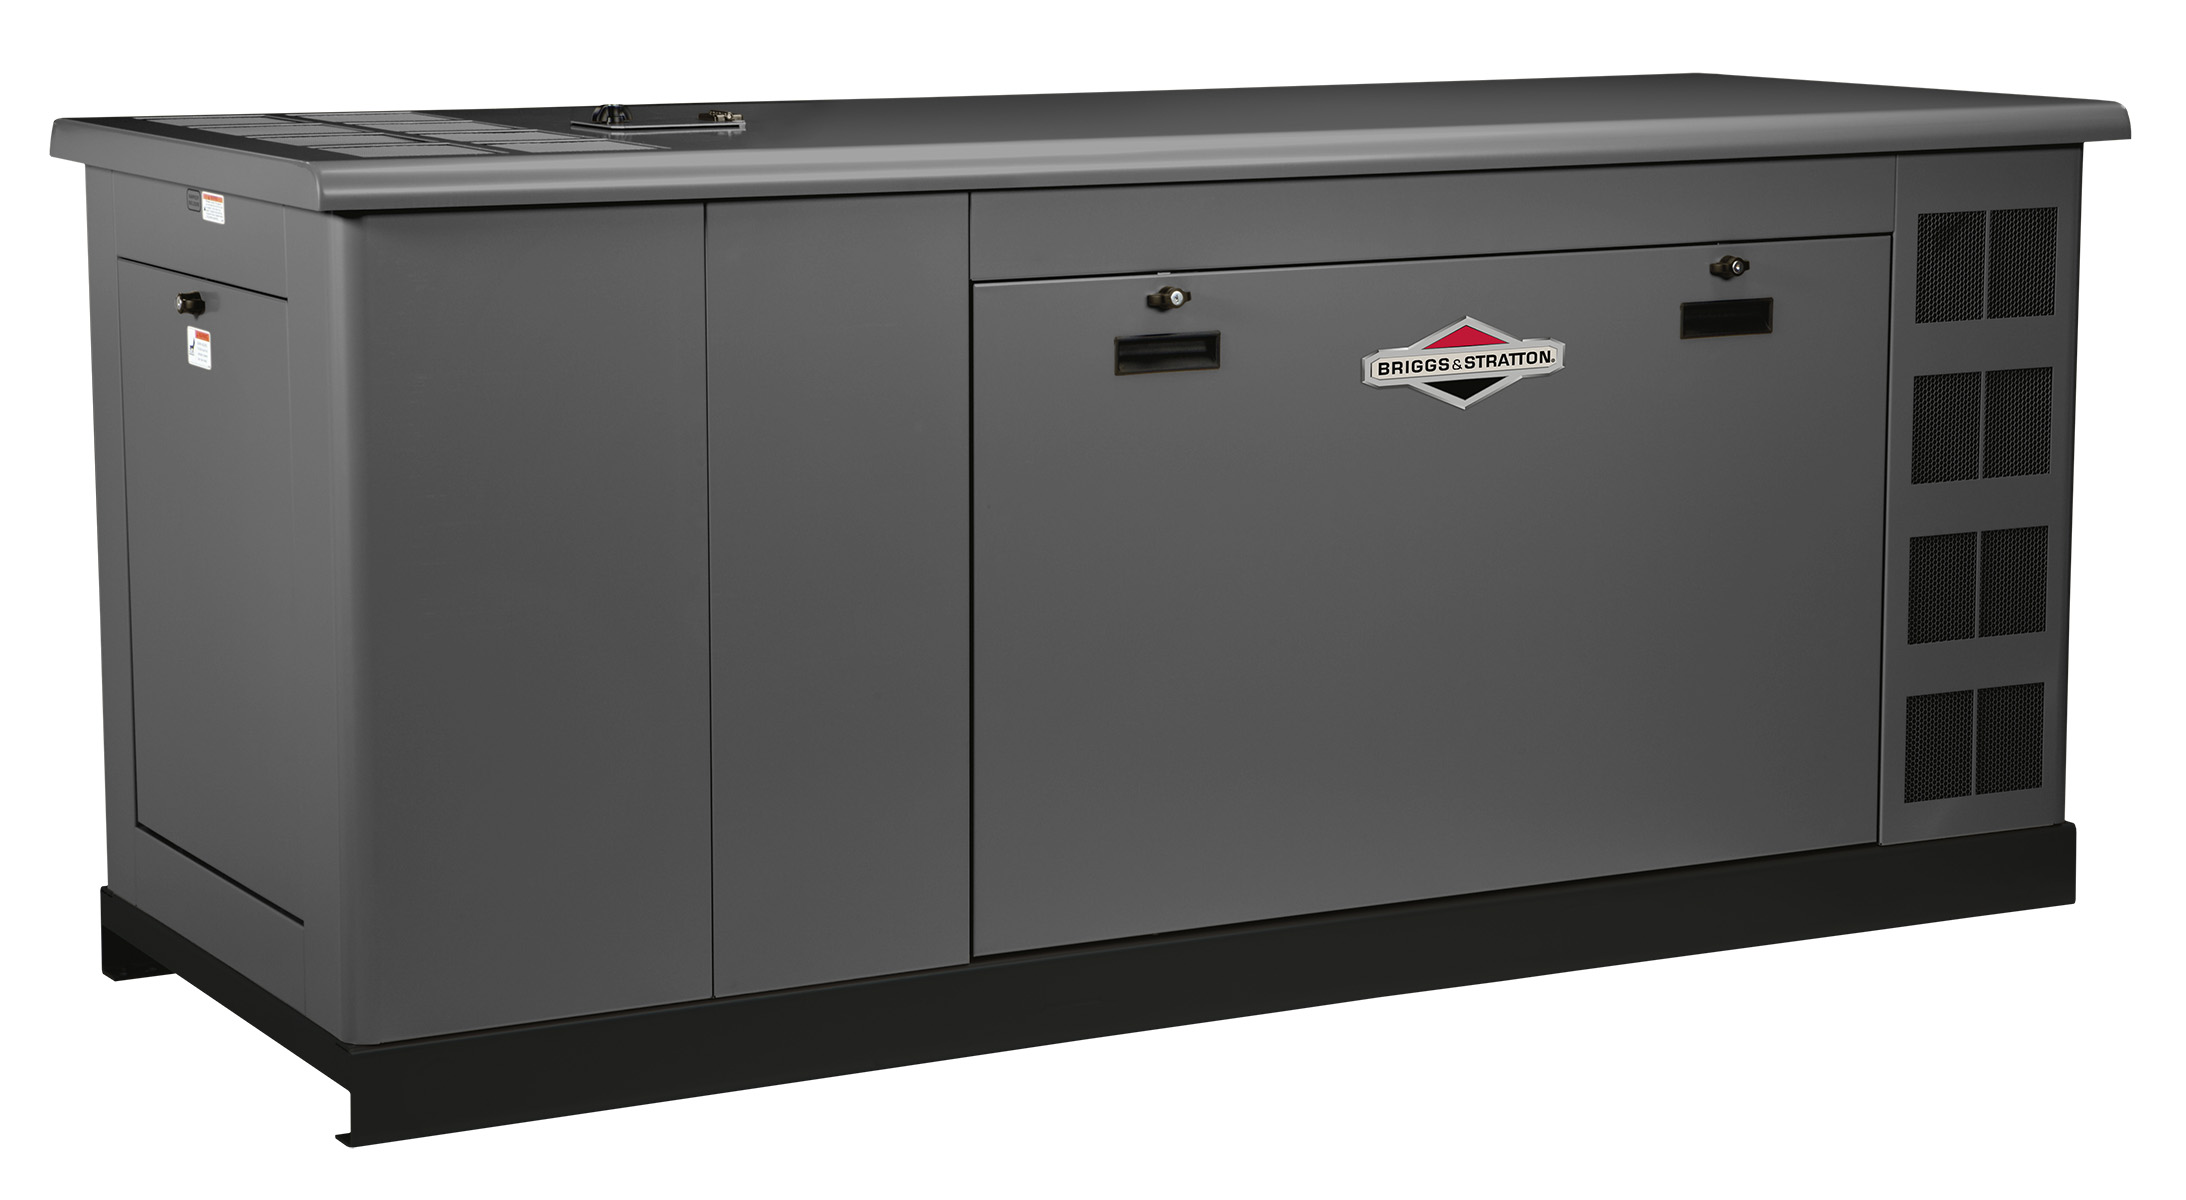 Briggs and Stratton 60kW Generator